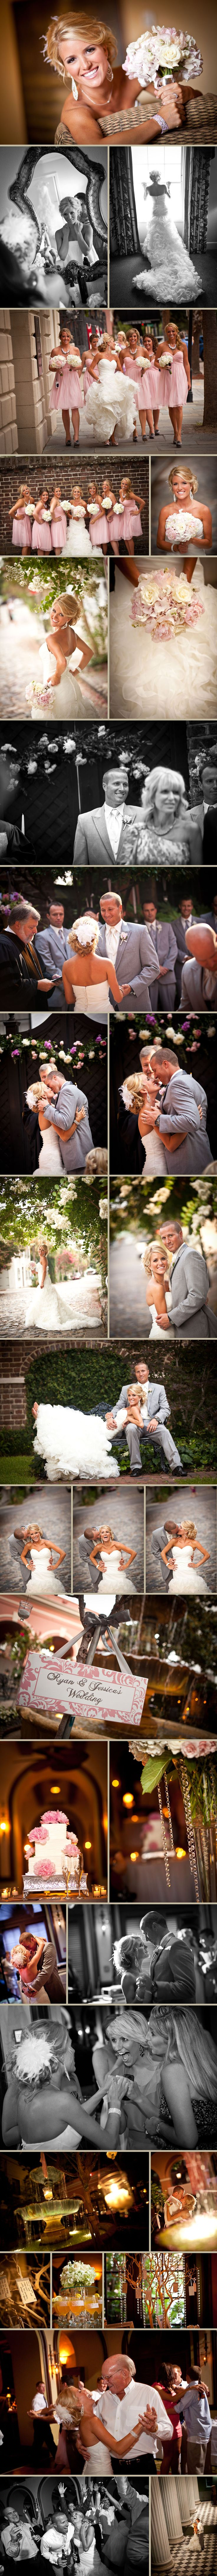 These wedding pictures are to DIE for!!!